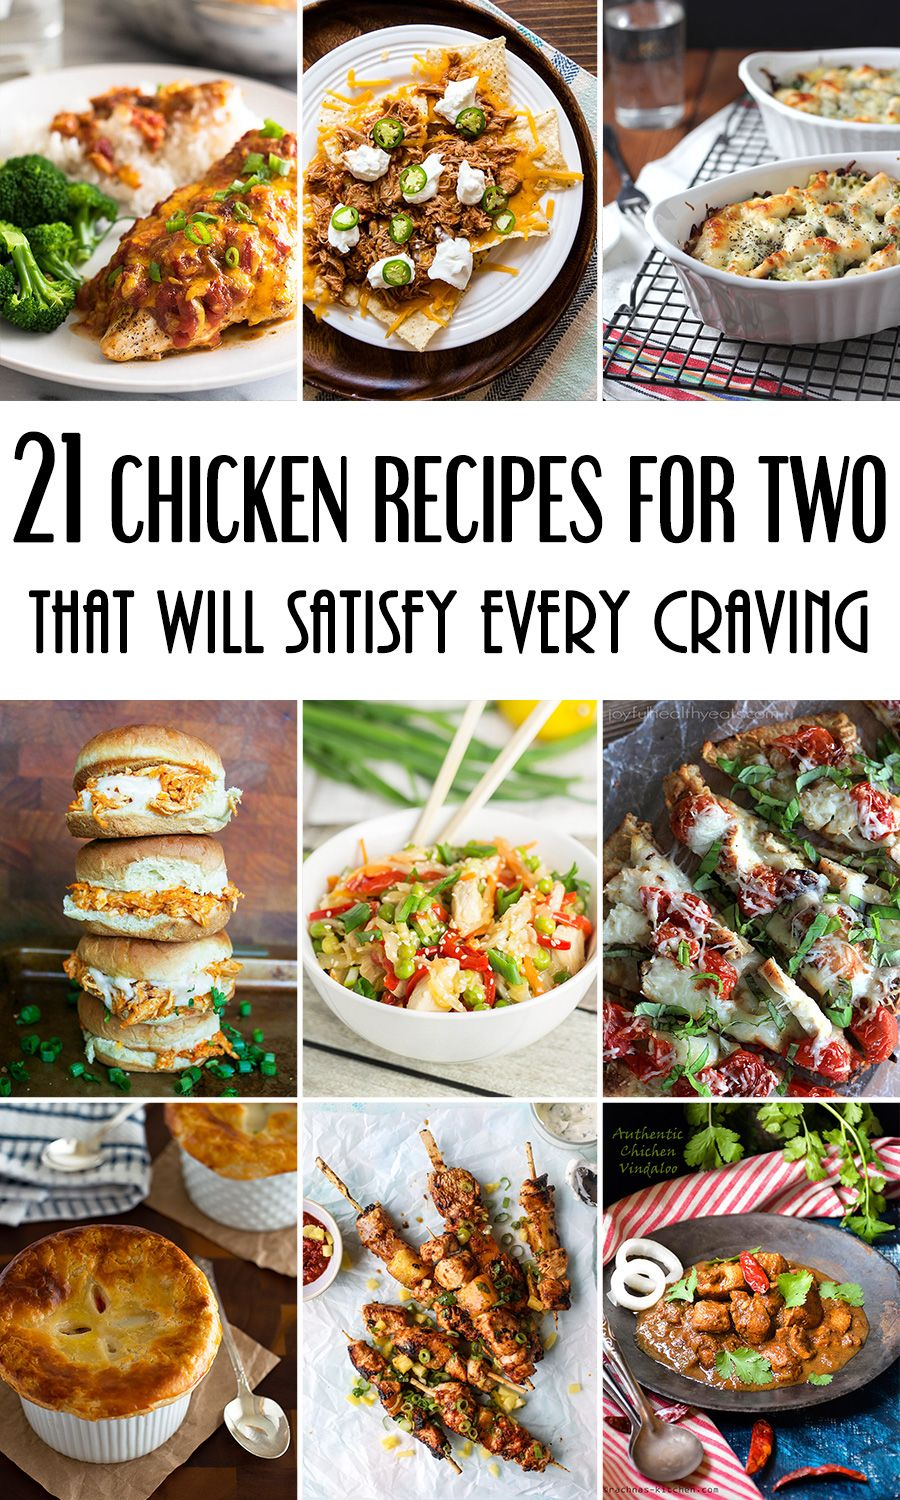 21 Chicken Recipes For Two That Will Satisfy Every Craving ...